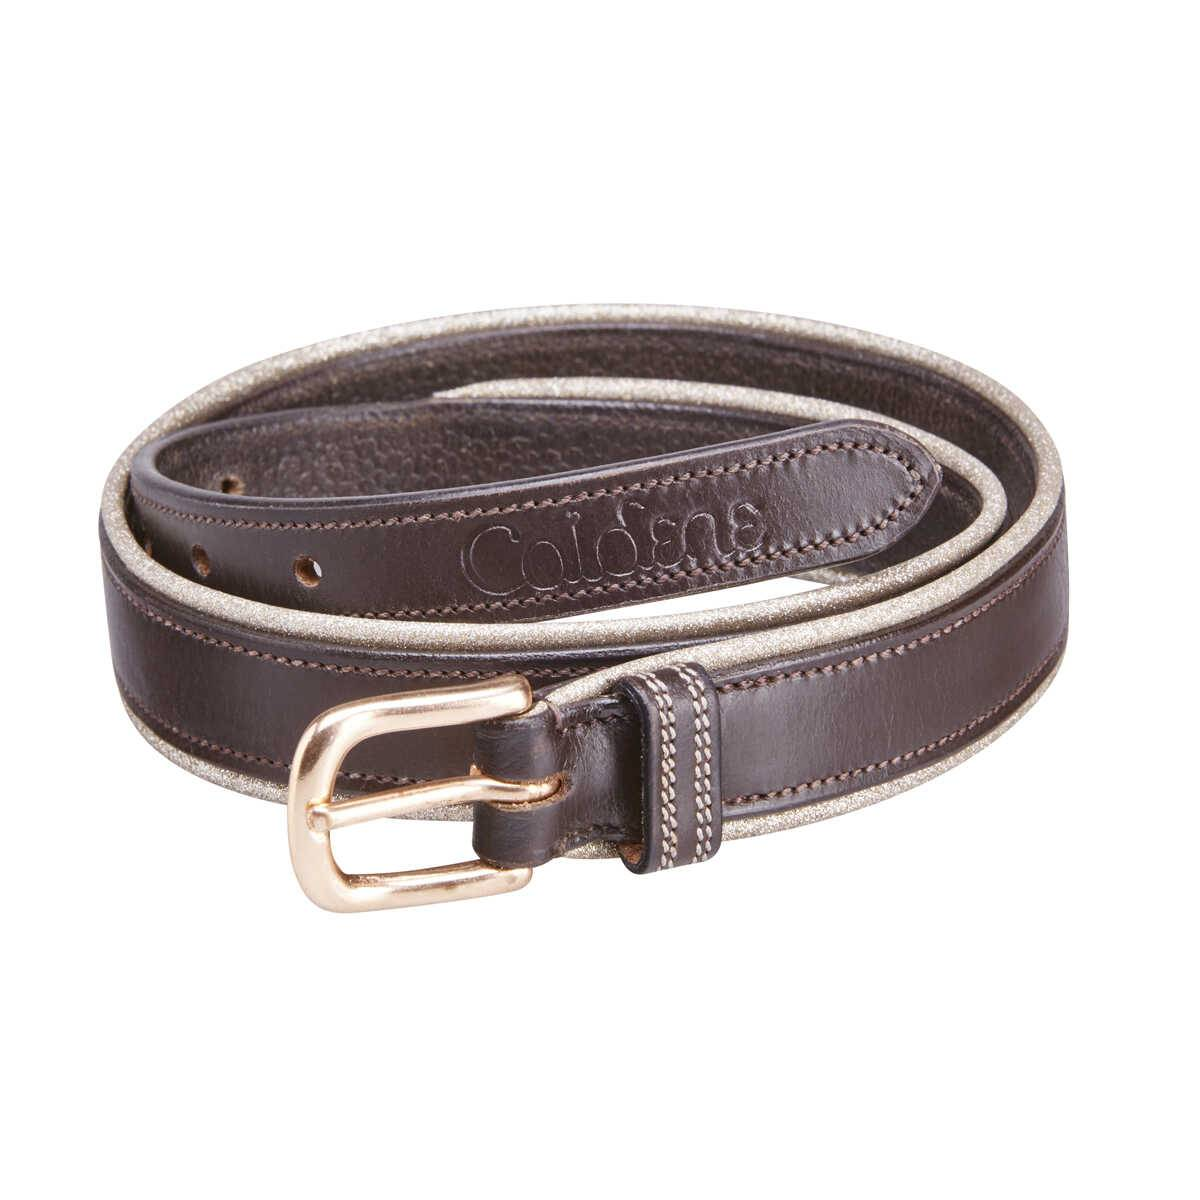 Caldene Felesse Leather Belt